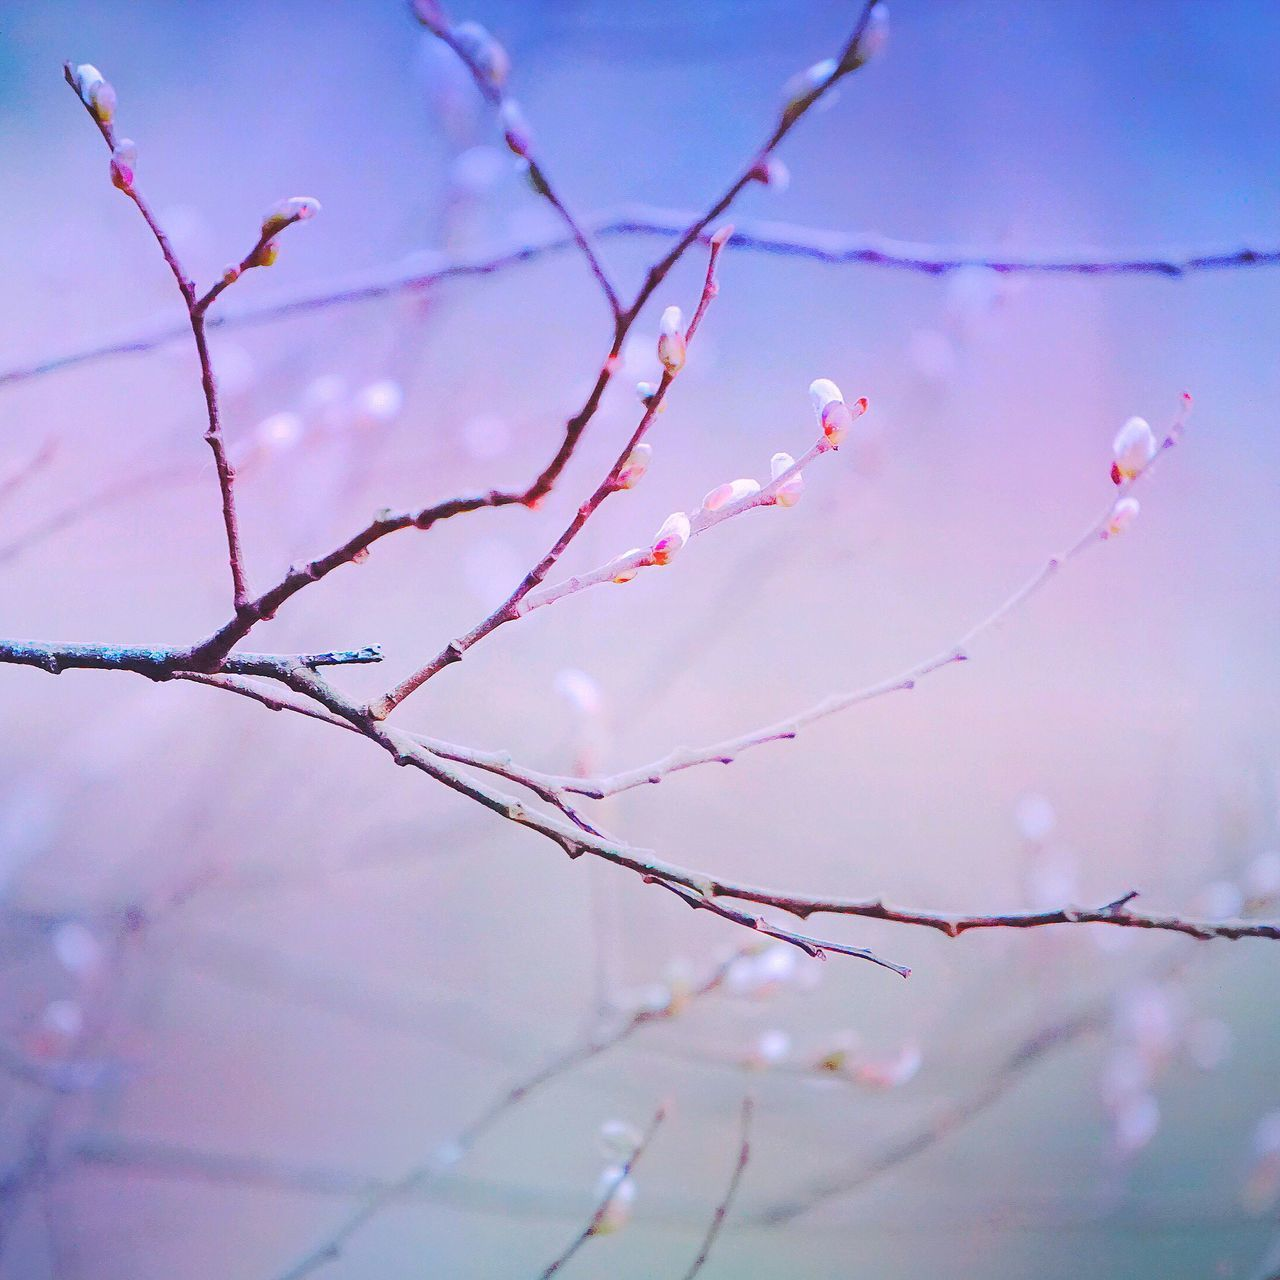 Nature Beauty In Nature Outdoors No People Day Branch Pink Color Fragility Close-up Growth Sky Flower Freshness Tree Sky Light Macro Minimalism Abstract Branches Trees Beauty In Nature Tranquil Scene